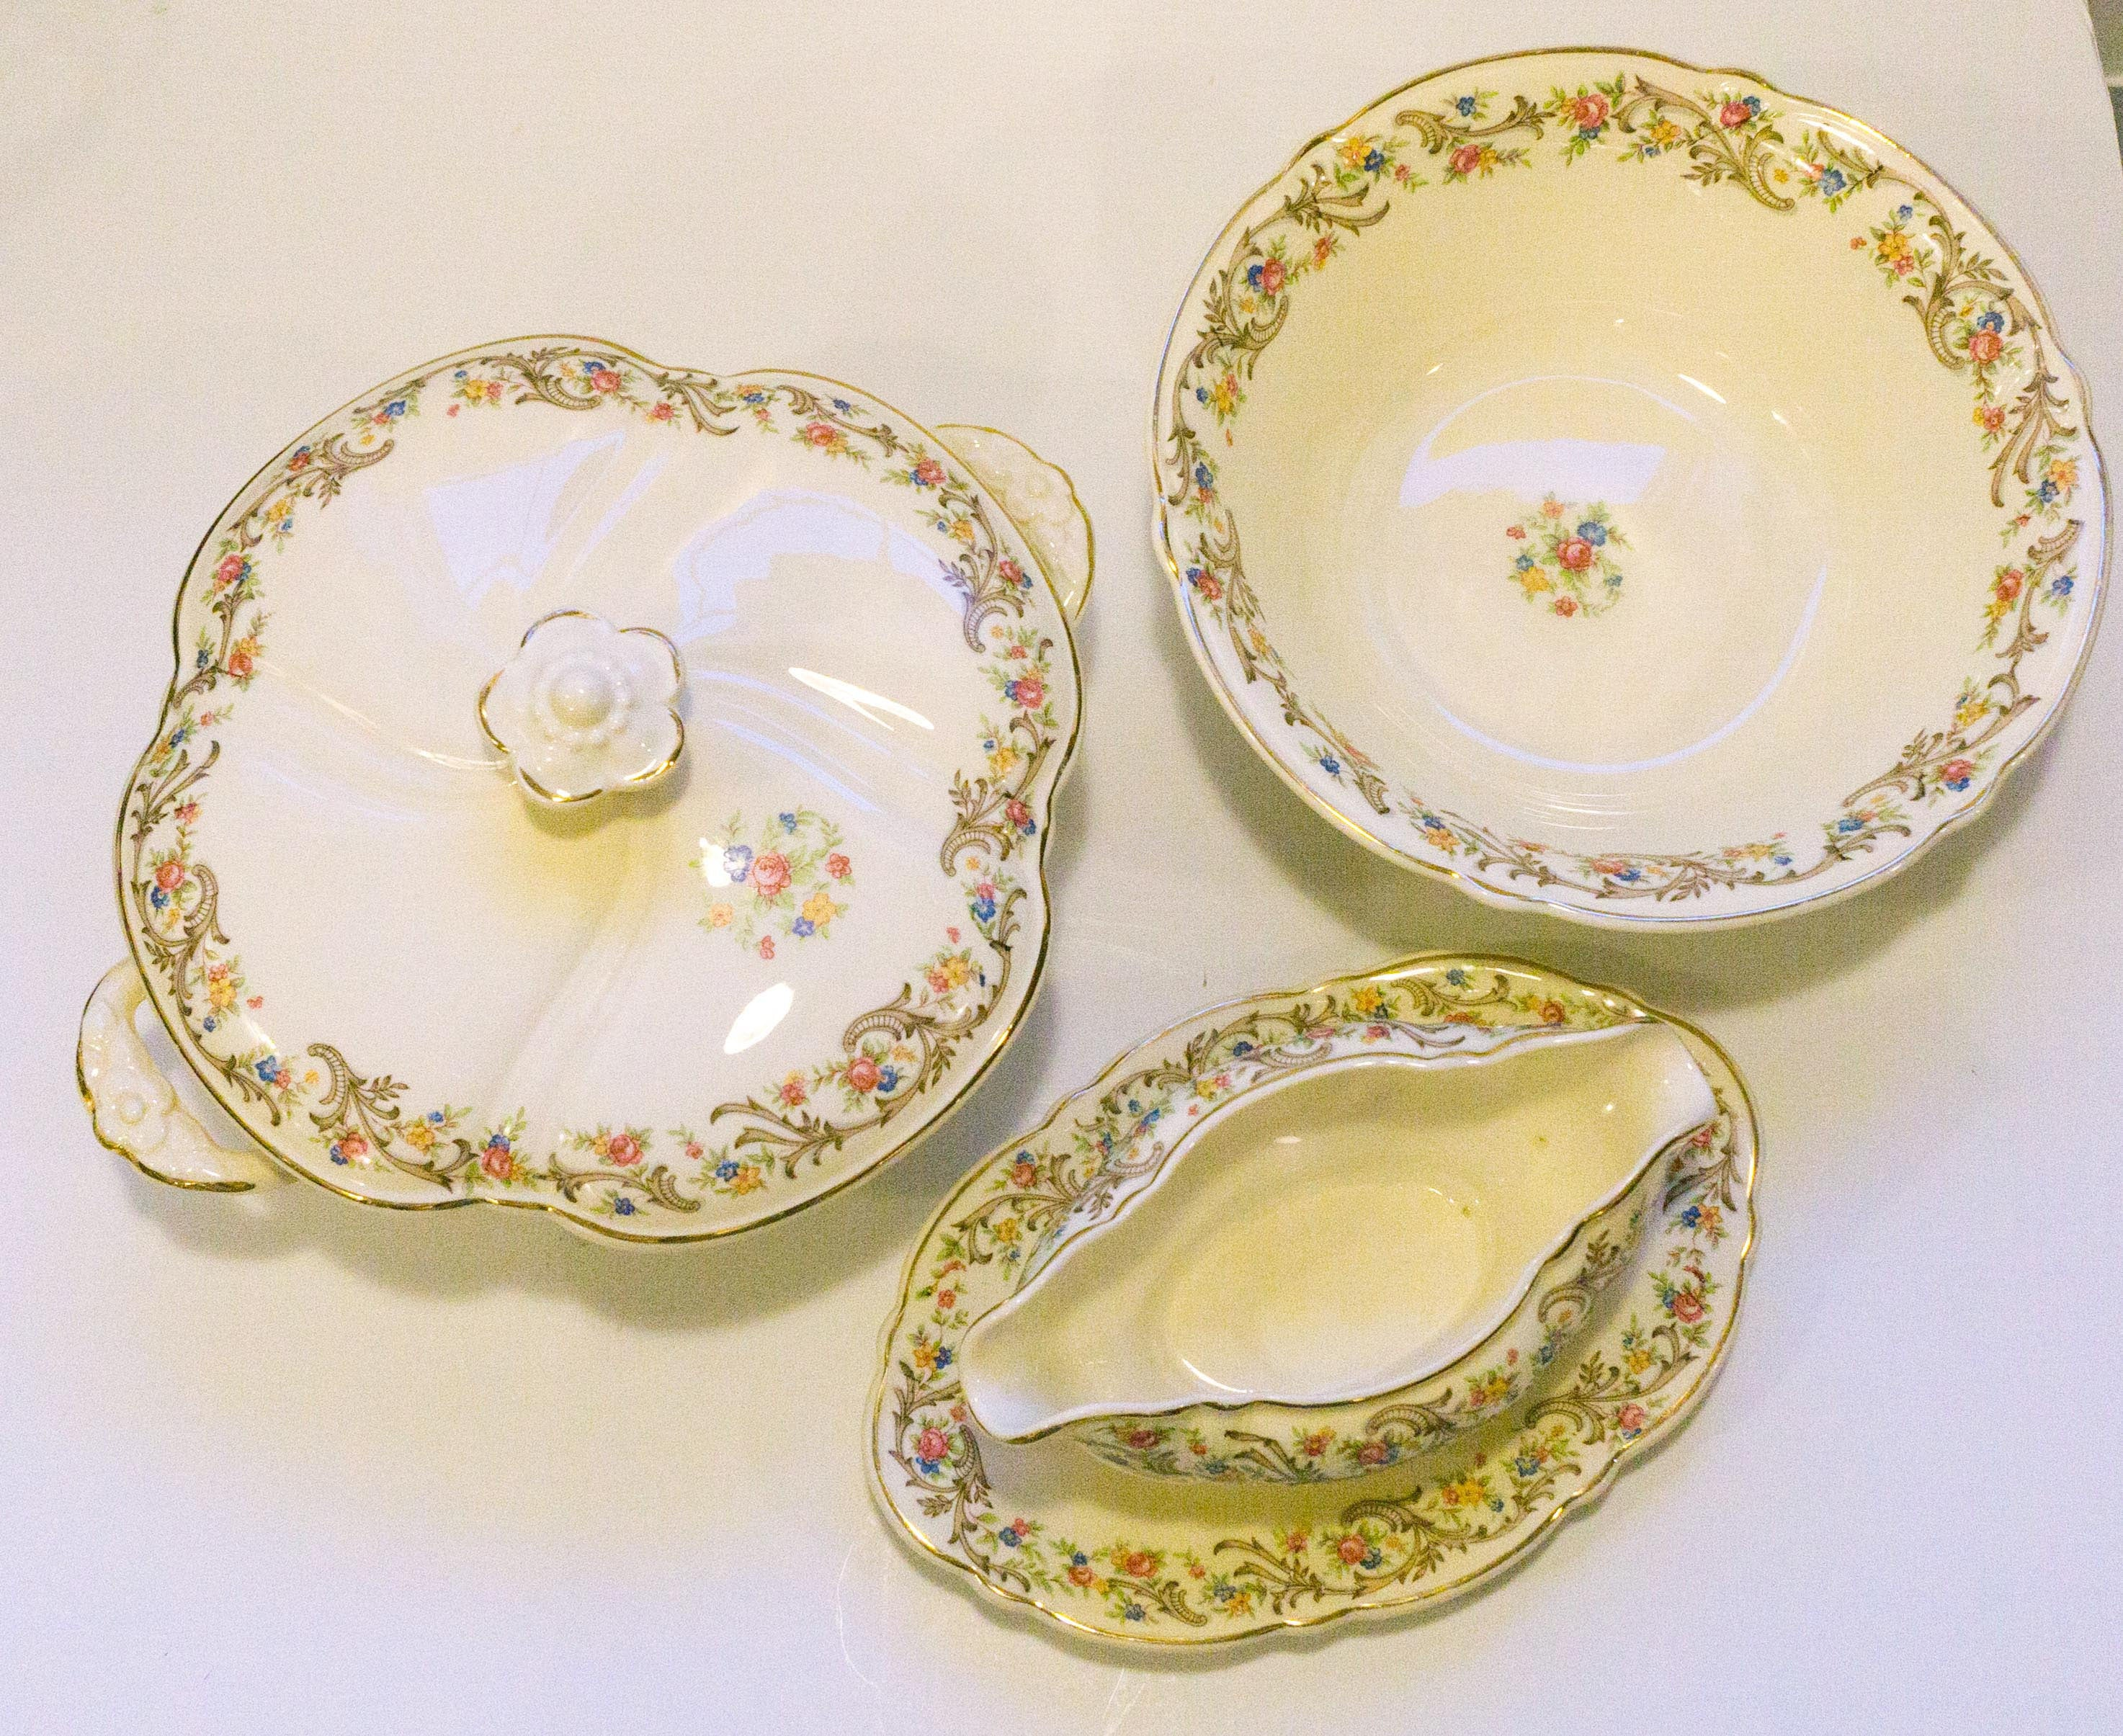 THREE PIECES Vintage 1942 Taylor Smith and Taylor USA Vogue Scroll & Floral Rim Floral Center TST180